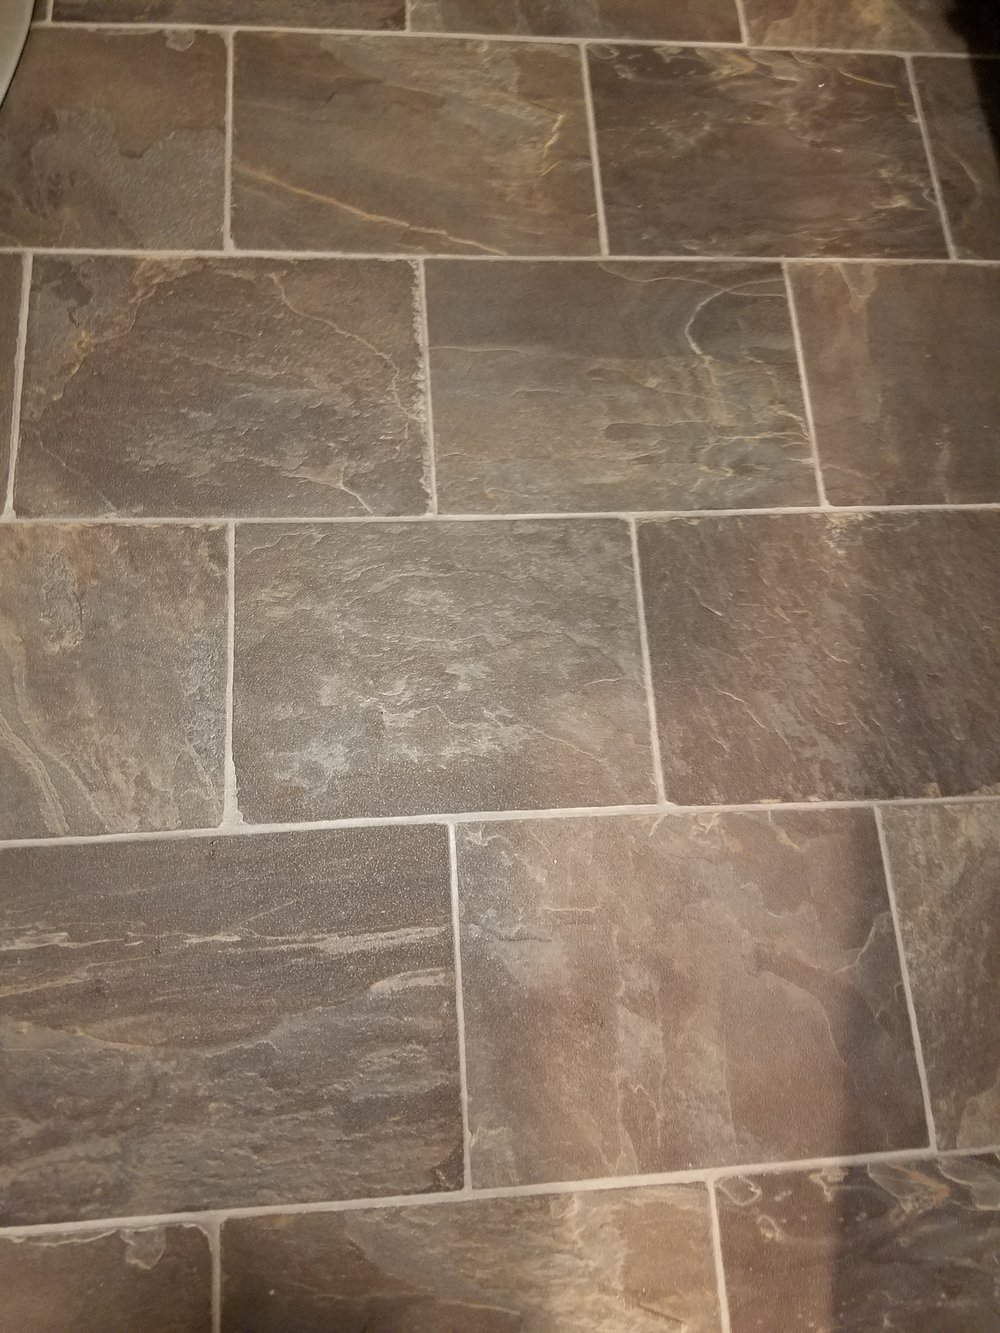 Vinyl flooring installed in a powder room